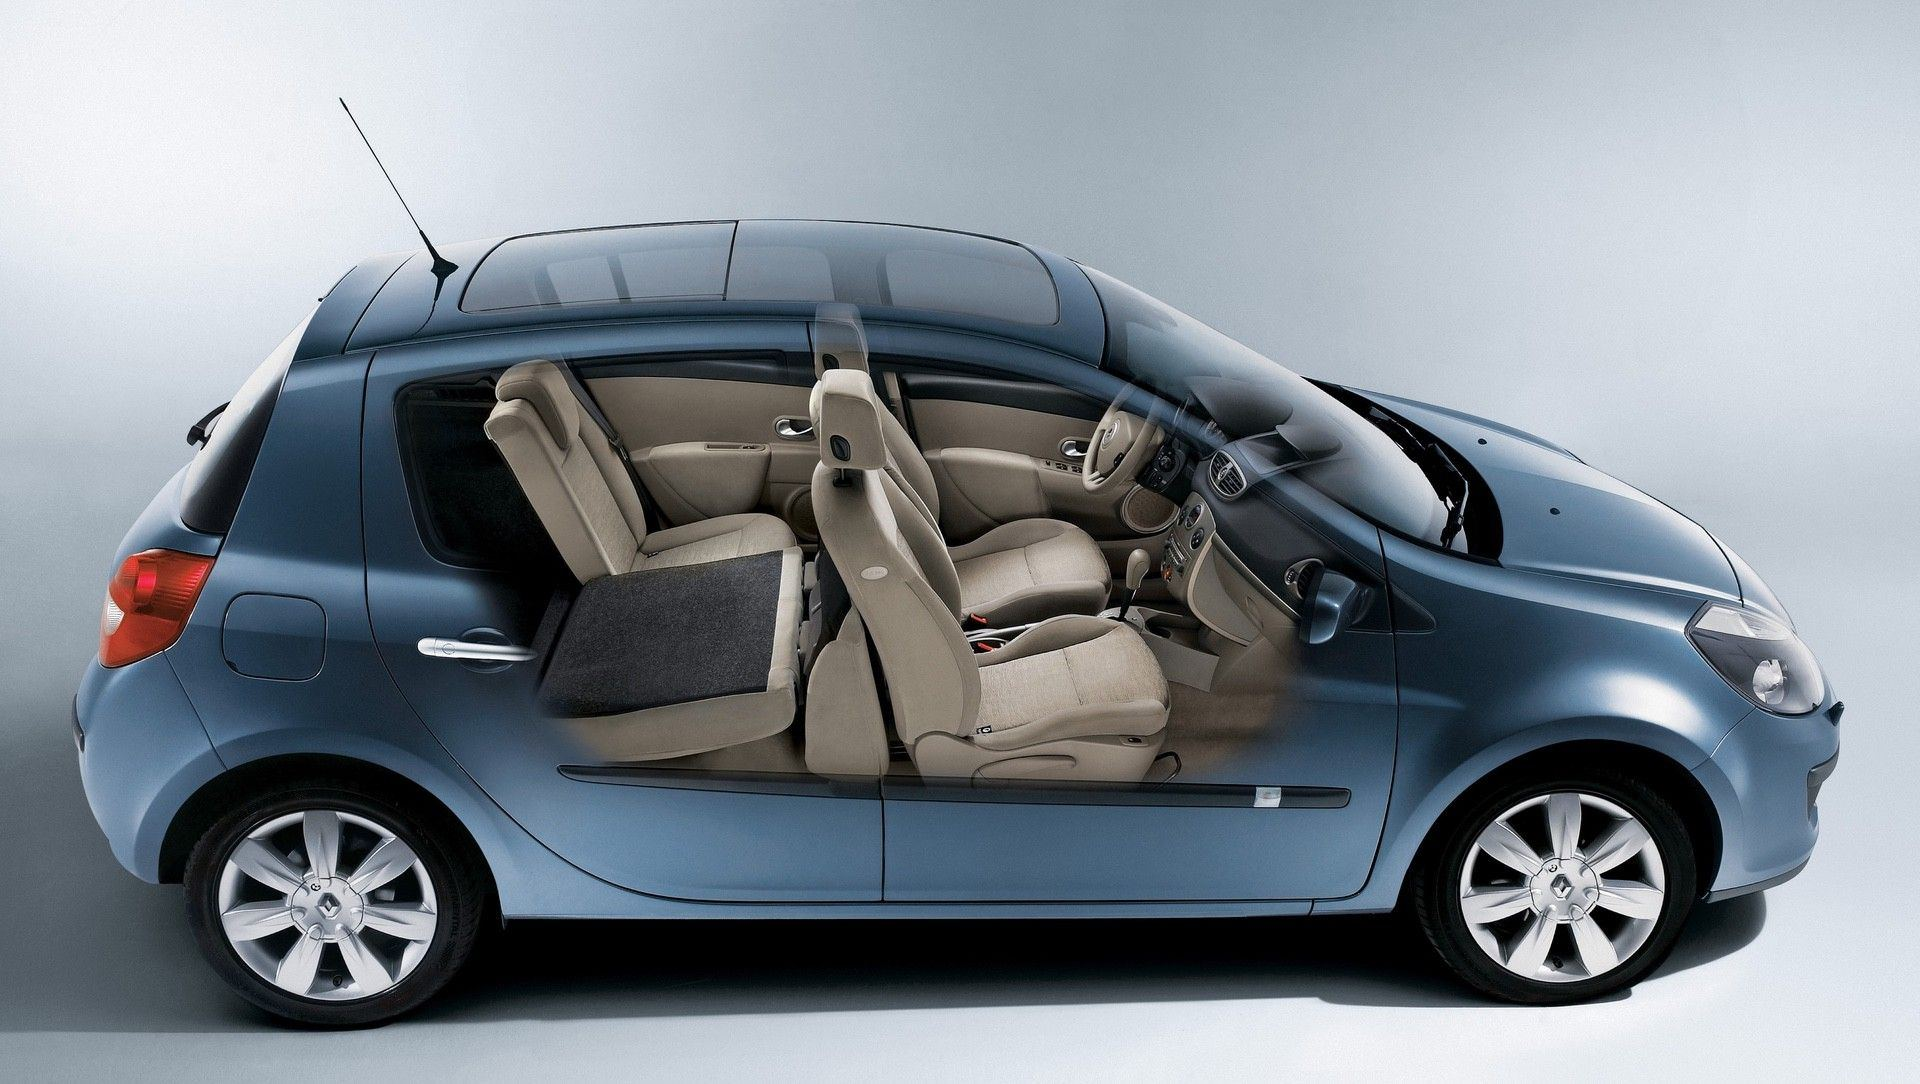 2020-30-years-of-Renault-CLIO-Renault-CLIO-III-2005-2012-12